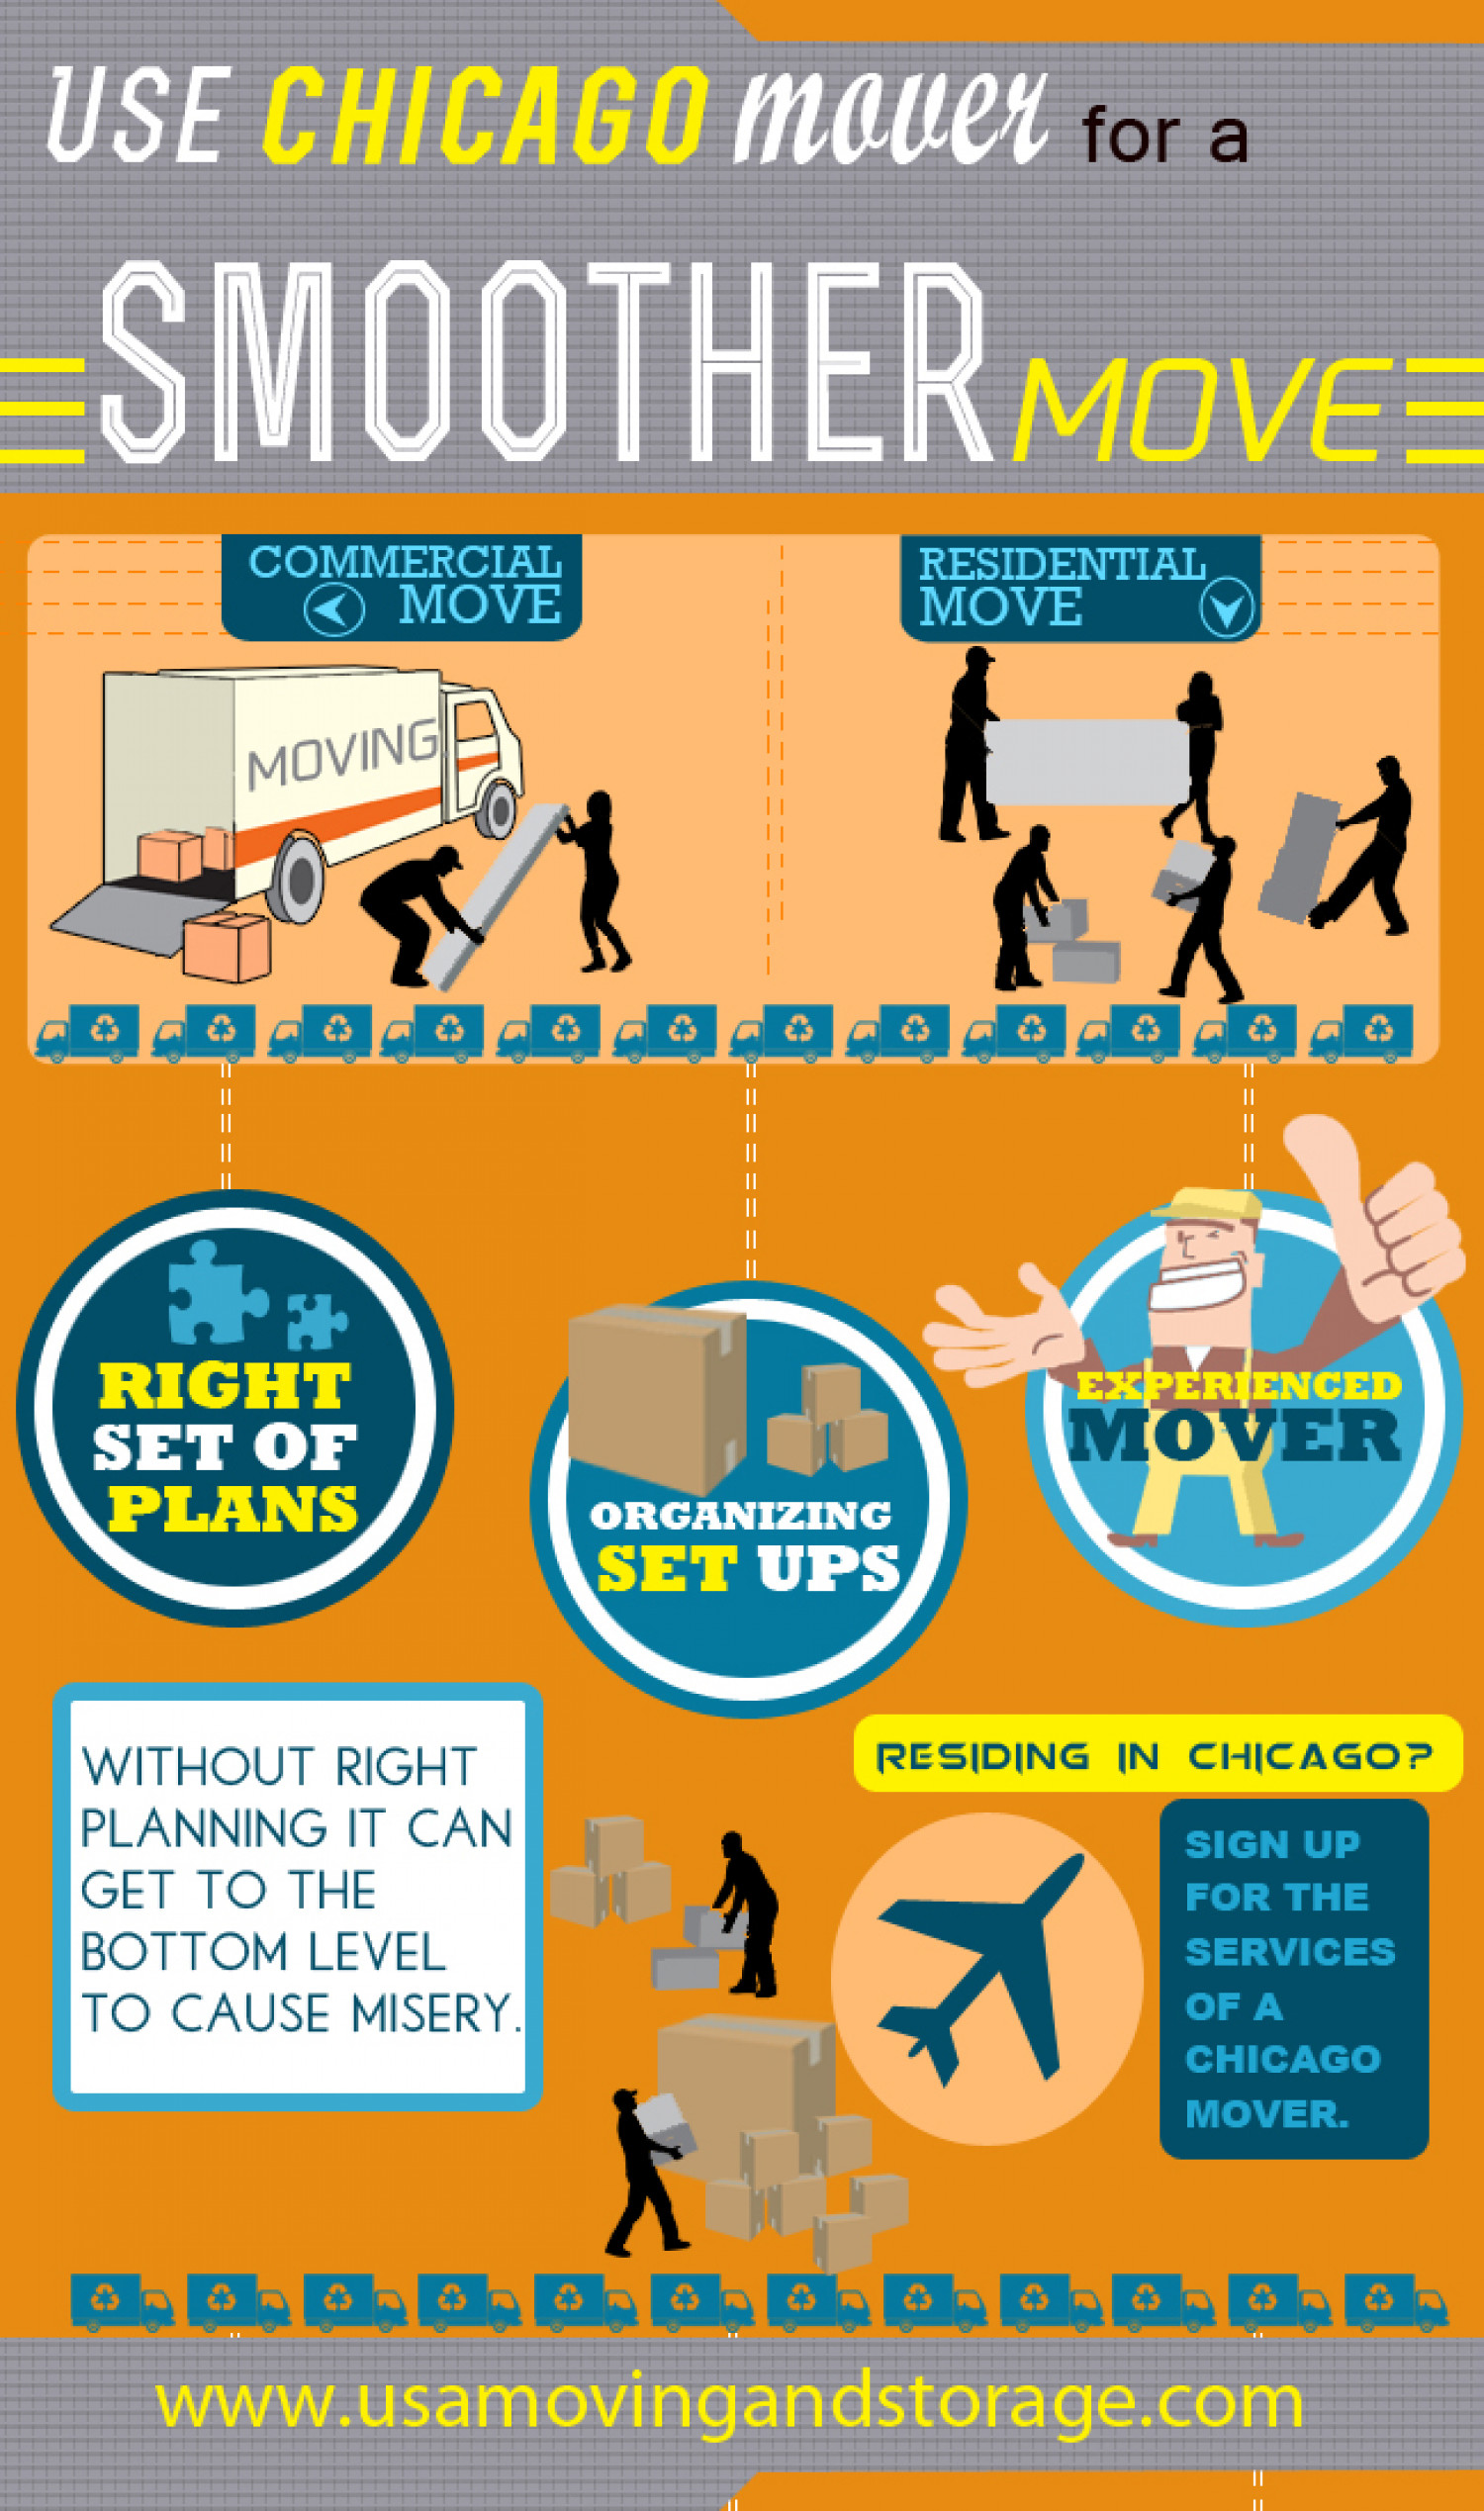 Use Chicago mover for a smoother move Infographic